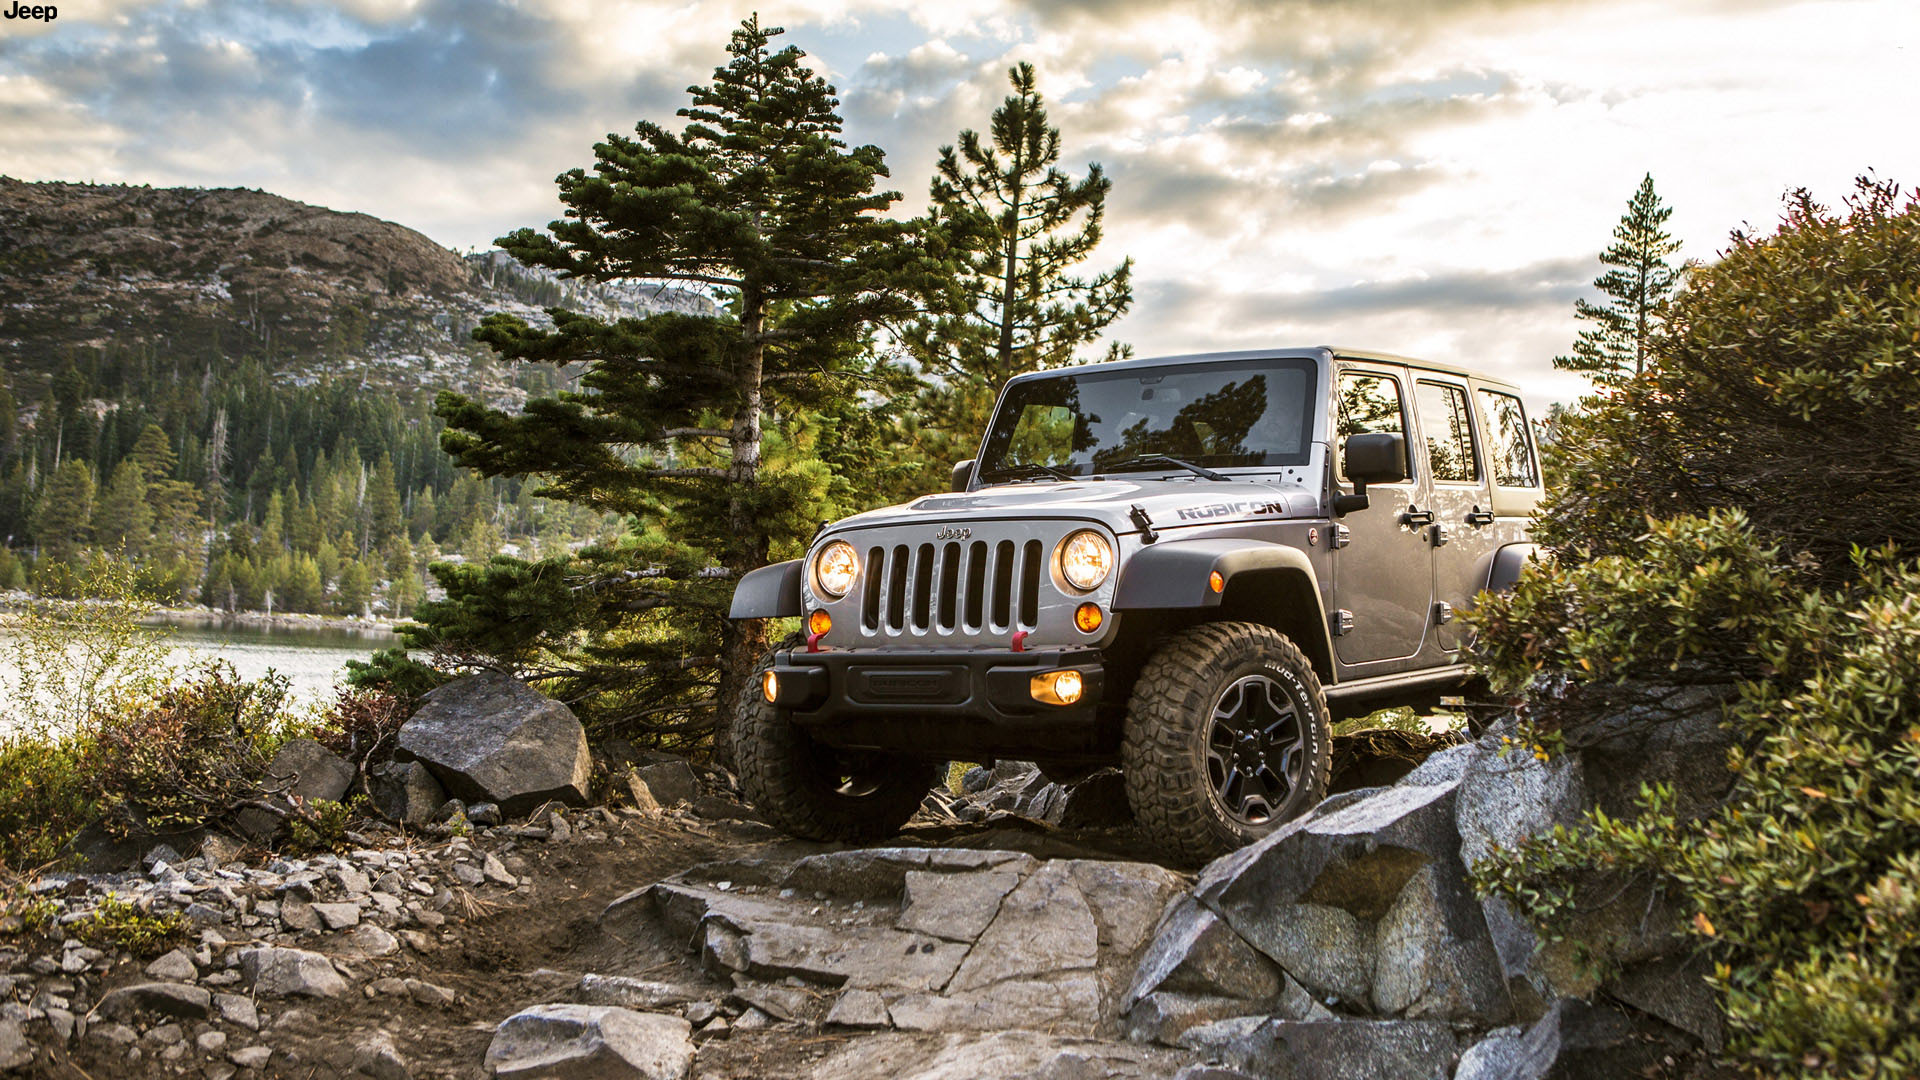 Download High Resolution Jeep Wrangler Rubicon Offroad